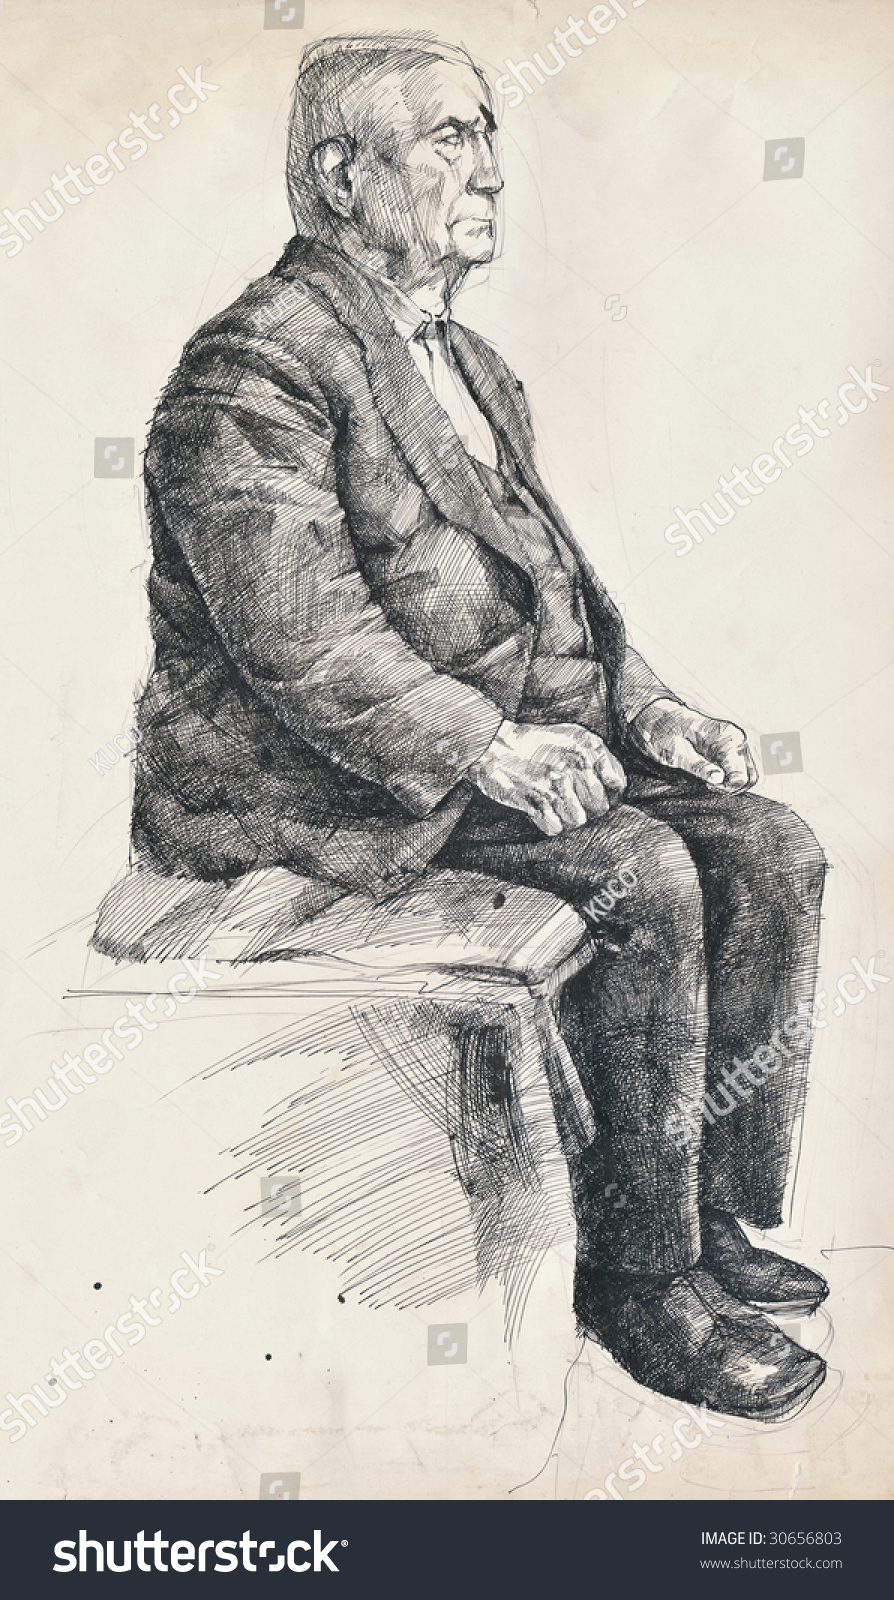 Man sitting in chair drawing - Hand Drawing Picture Ink And Pen An Old Man On The Chair